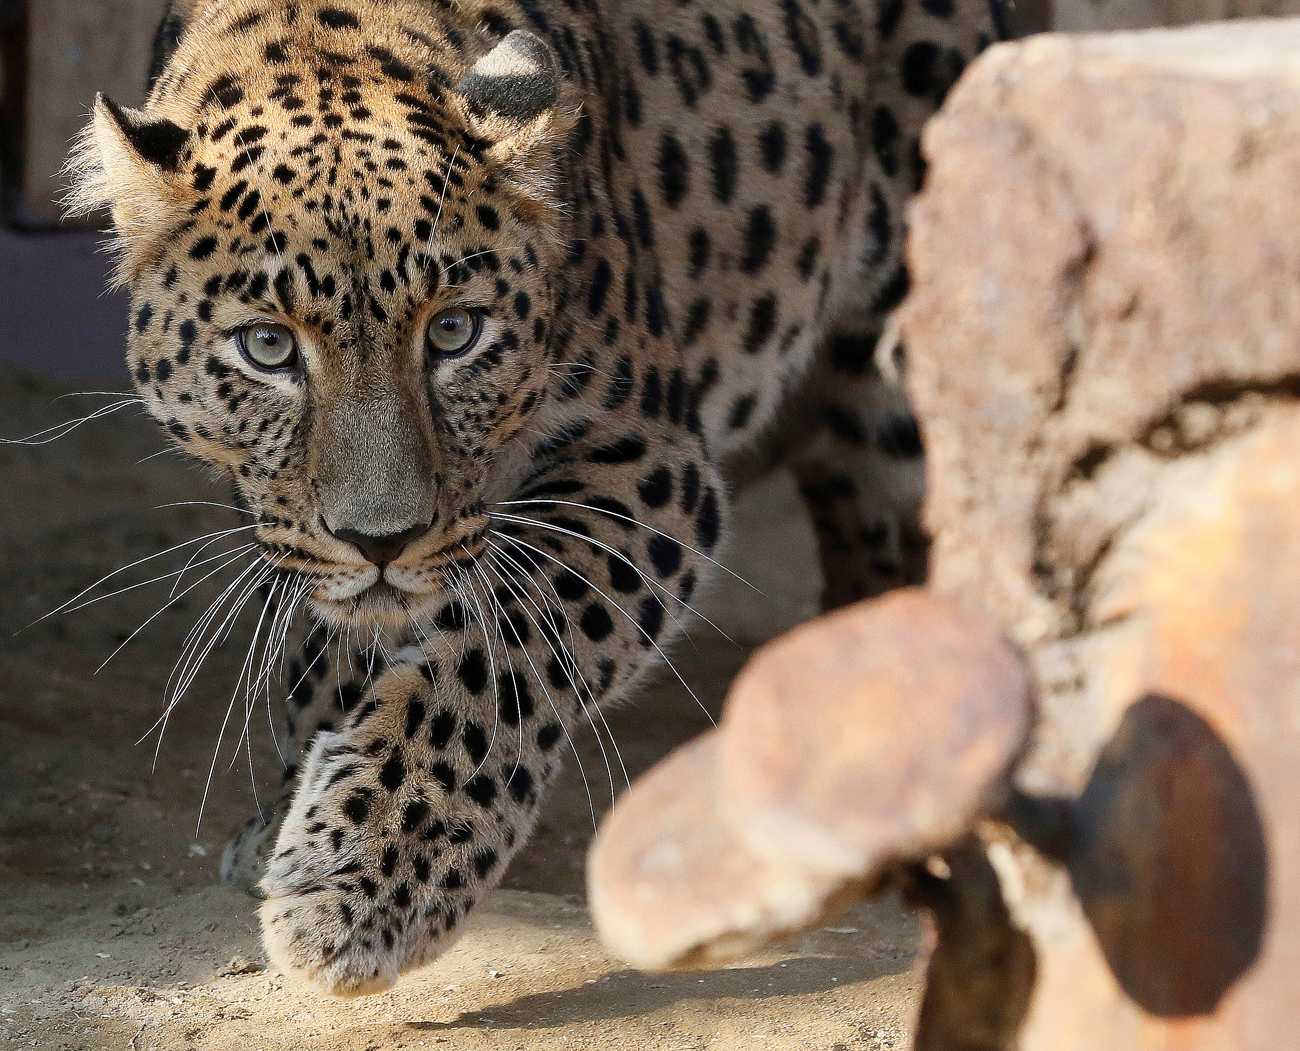 Amur leopard or Far Eastern leopard named Kirin, a 7-year-old male born in the Prague Zoo and transported to Krasnoyarsk in August, walks at its new enclosure after a quarantine, at the Royev Ruchey Zoo on the suburbs of the Siberian city of Krasnoyarsk, Russia